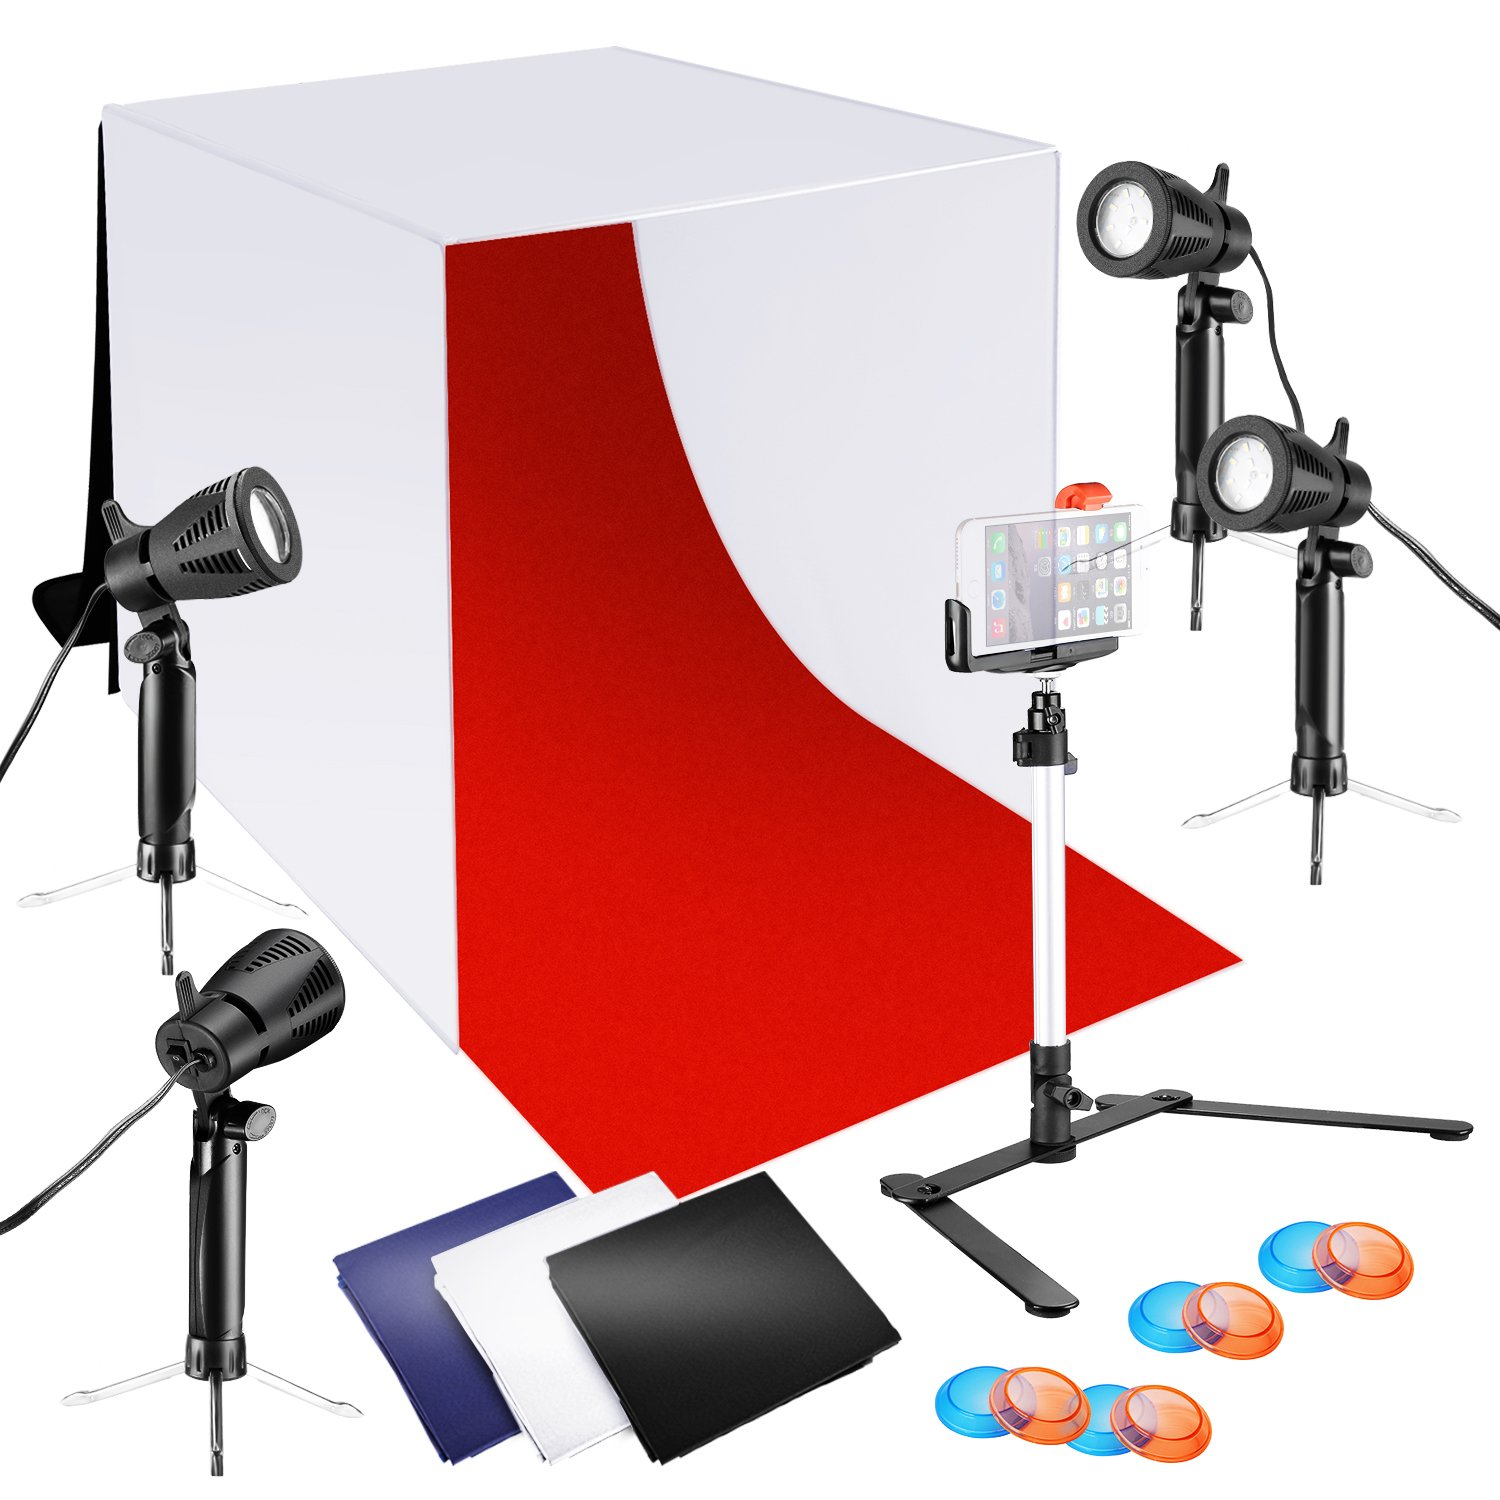 Neewer 24x24 inches Tabletop Photography Lightbox Light Tent Lighting Kit with LED Light, Color Backdrops, Gel Filters, Stand with Cellphone Clip for iPhone X 8 7 6 6S Samsung Galaxy S8 S7 etc by Neewer